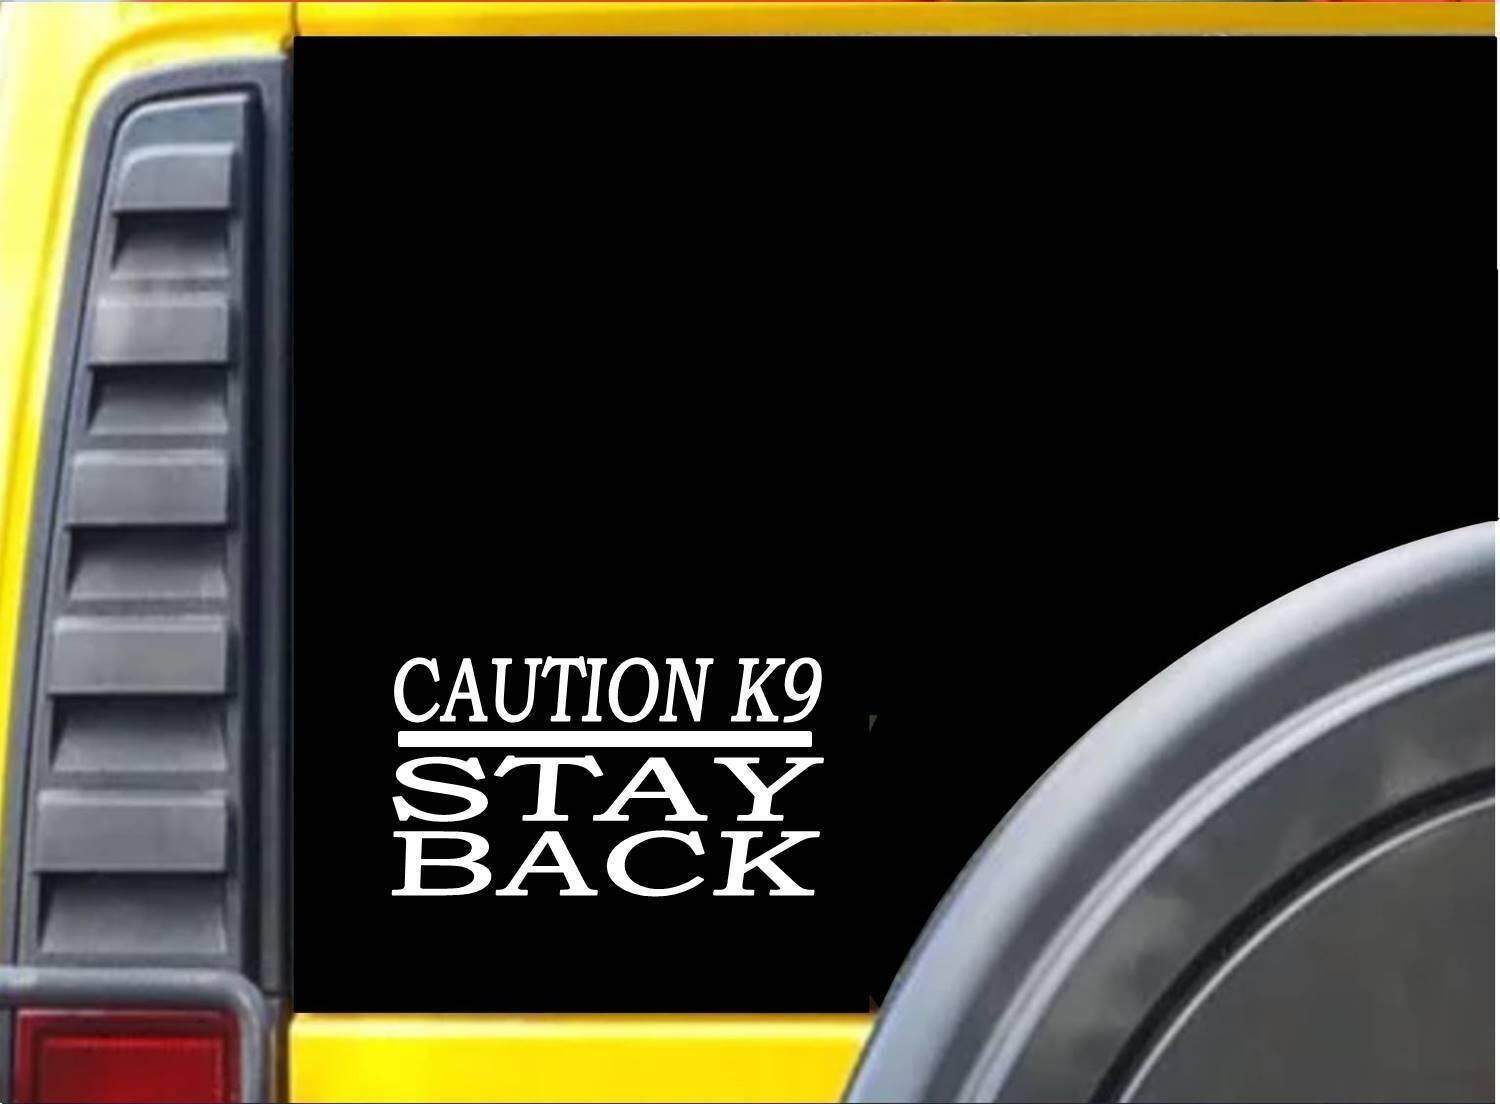 Specifications of caution k9 stay back sticker k213 6 inch malinois german shepherd dog decal car sticker 15cm